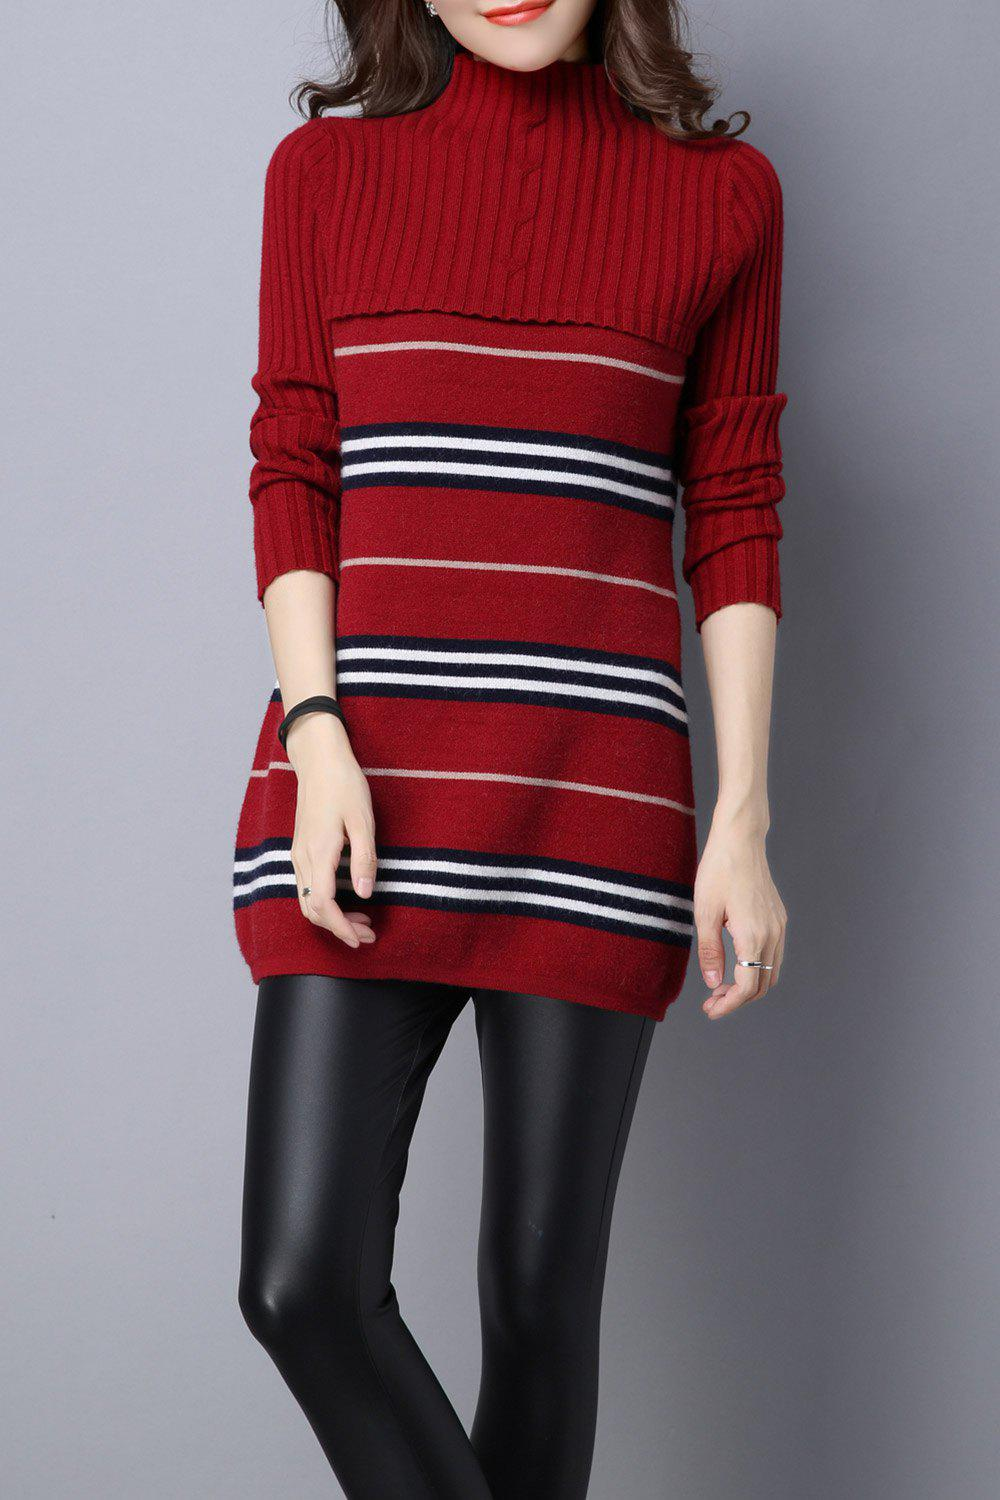 Stripe Color Block Knitted Jumper Dress - DEEP RED L